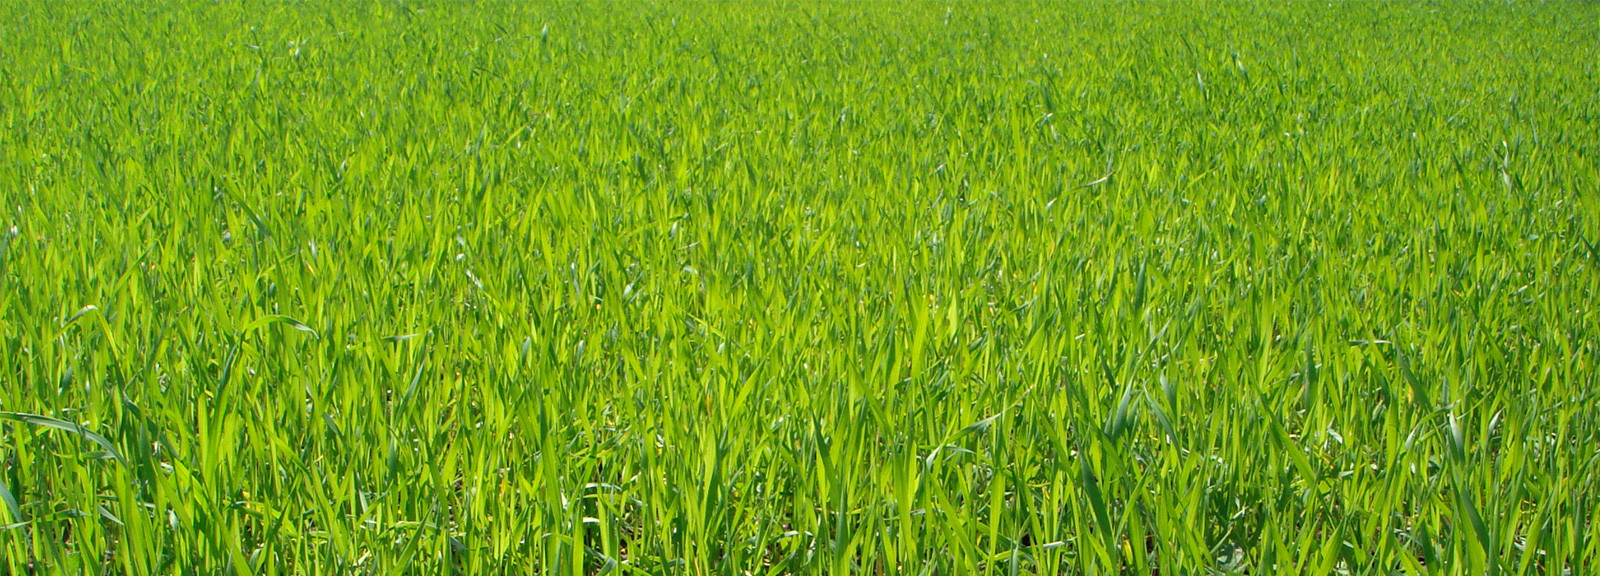 succeed-content-boring-industry-grass-grow